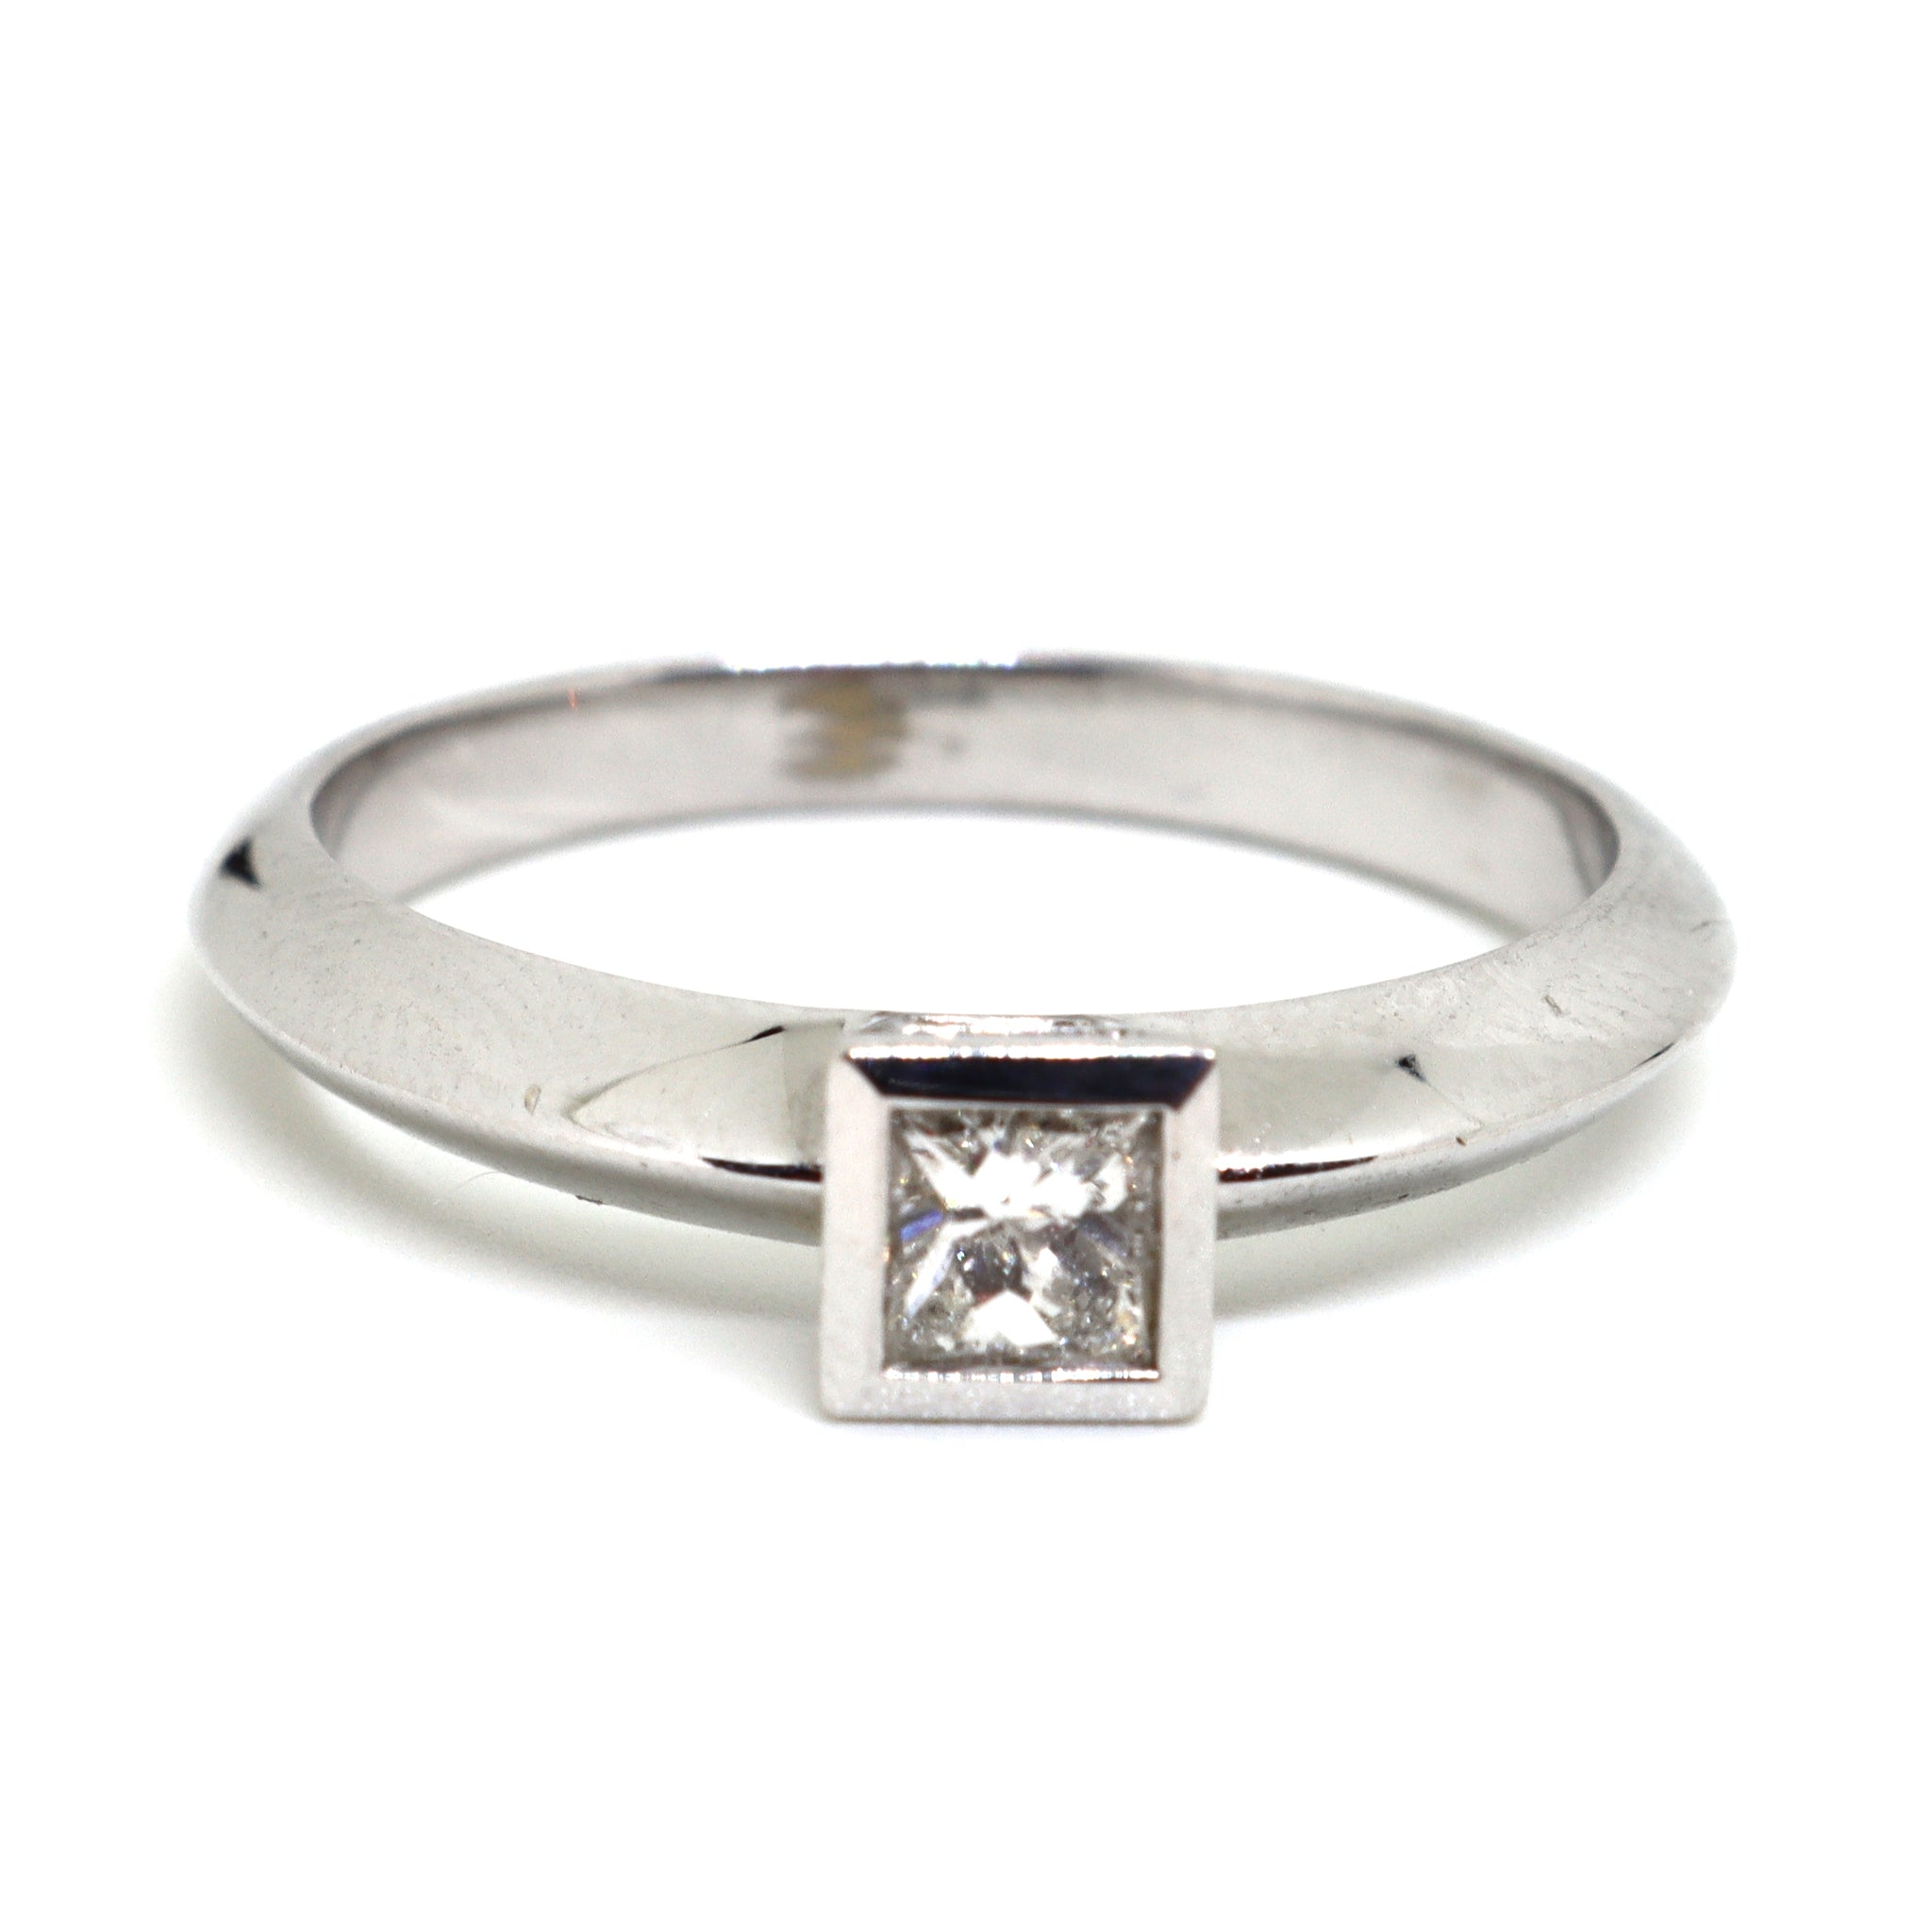 Solitaire ring with a princess cut diamond